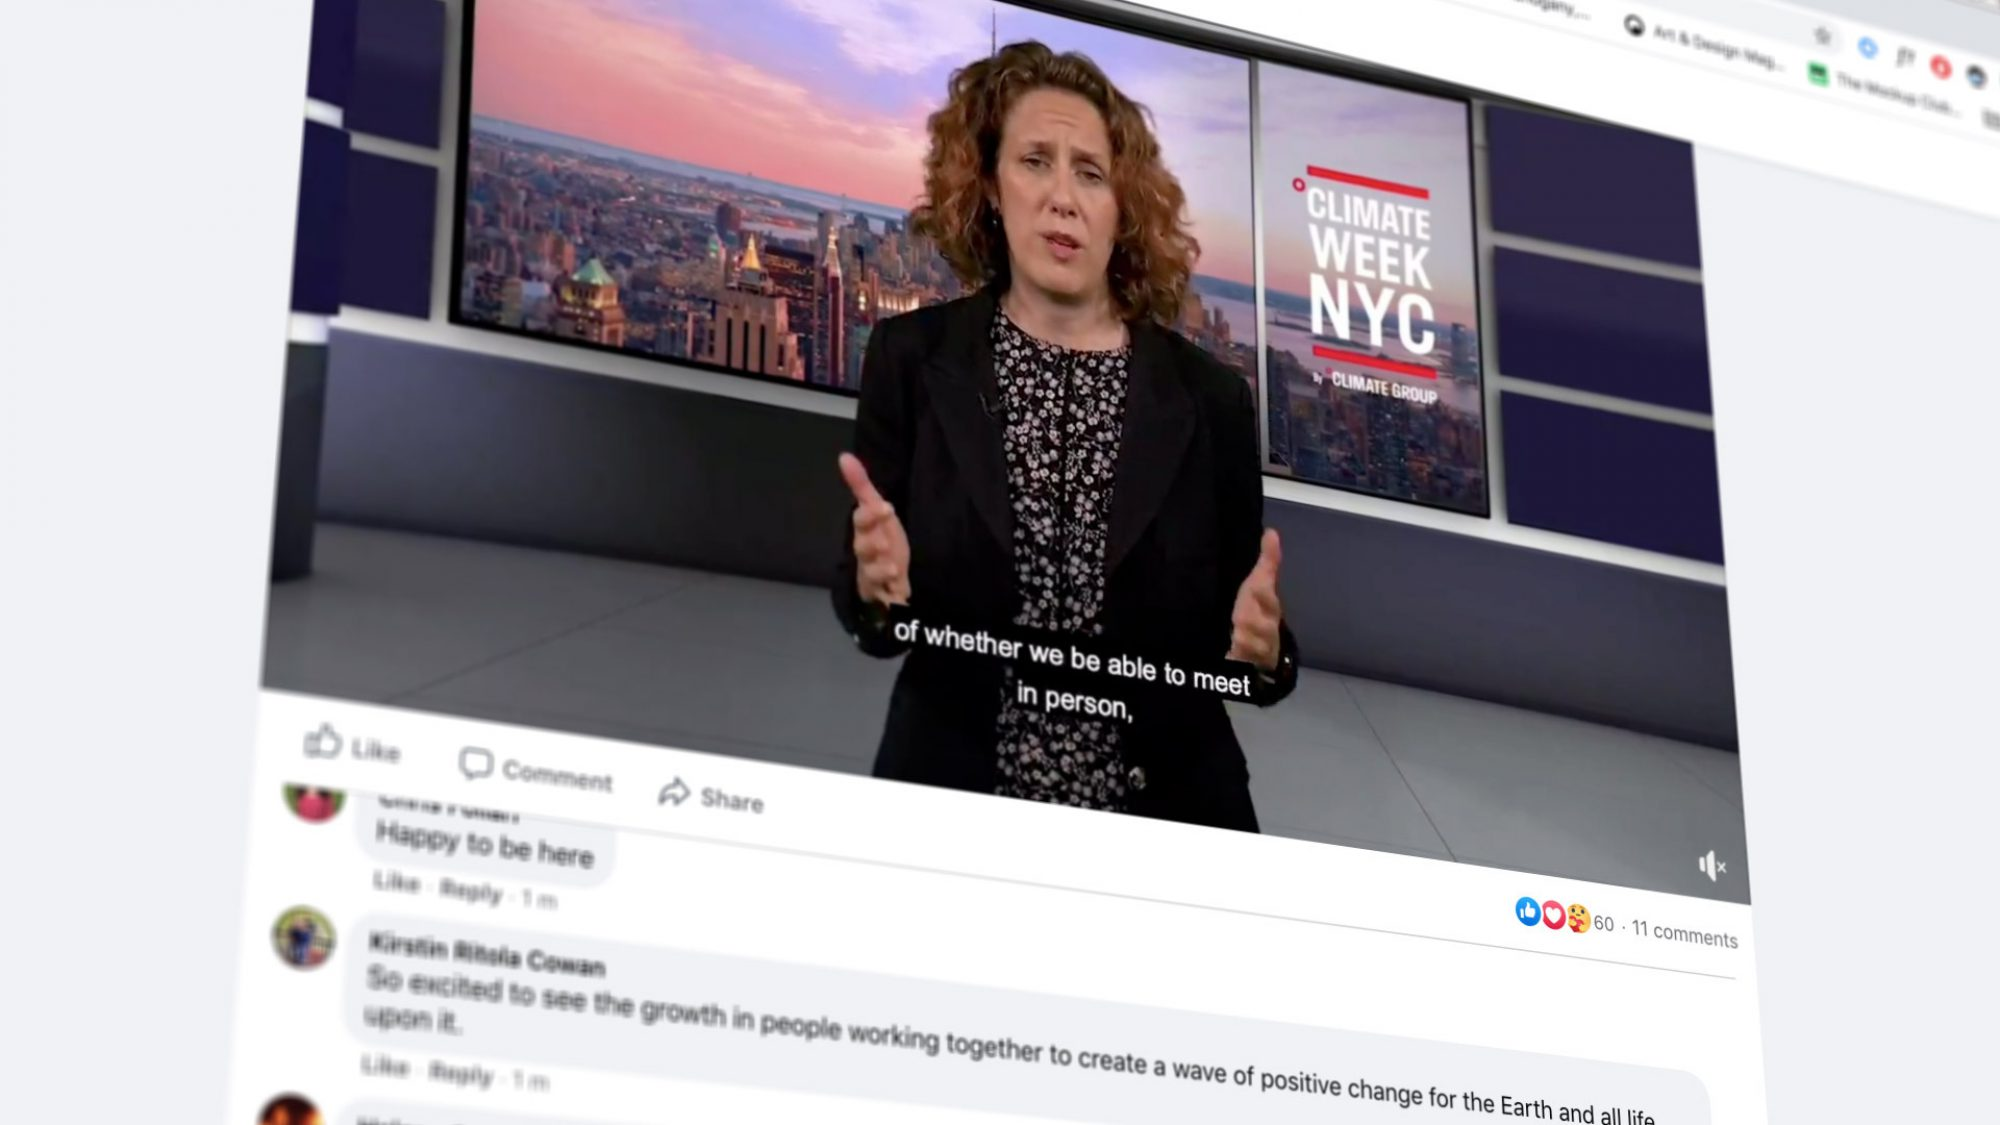 Facebook video from Climate Week NYC 2020